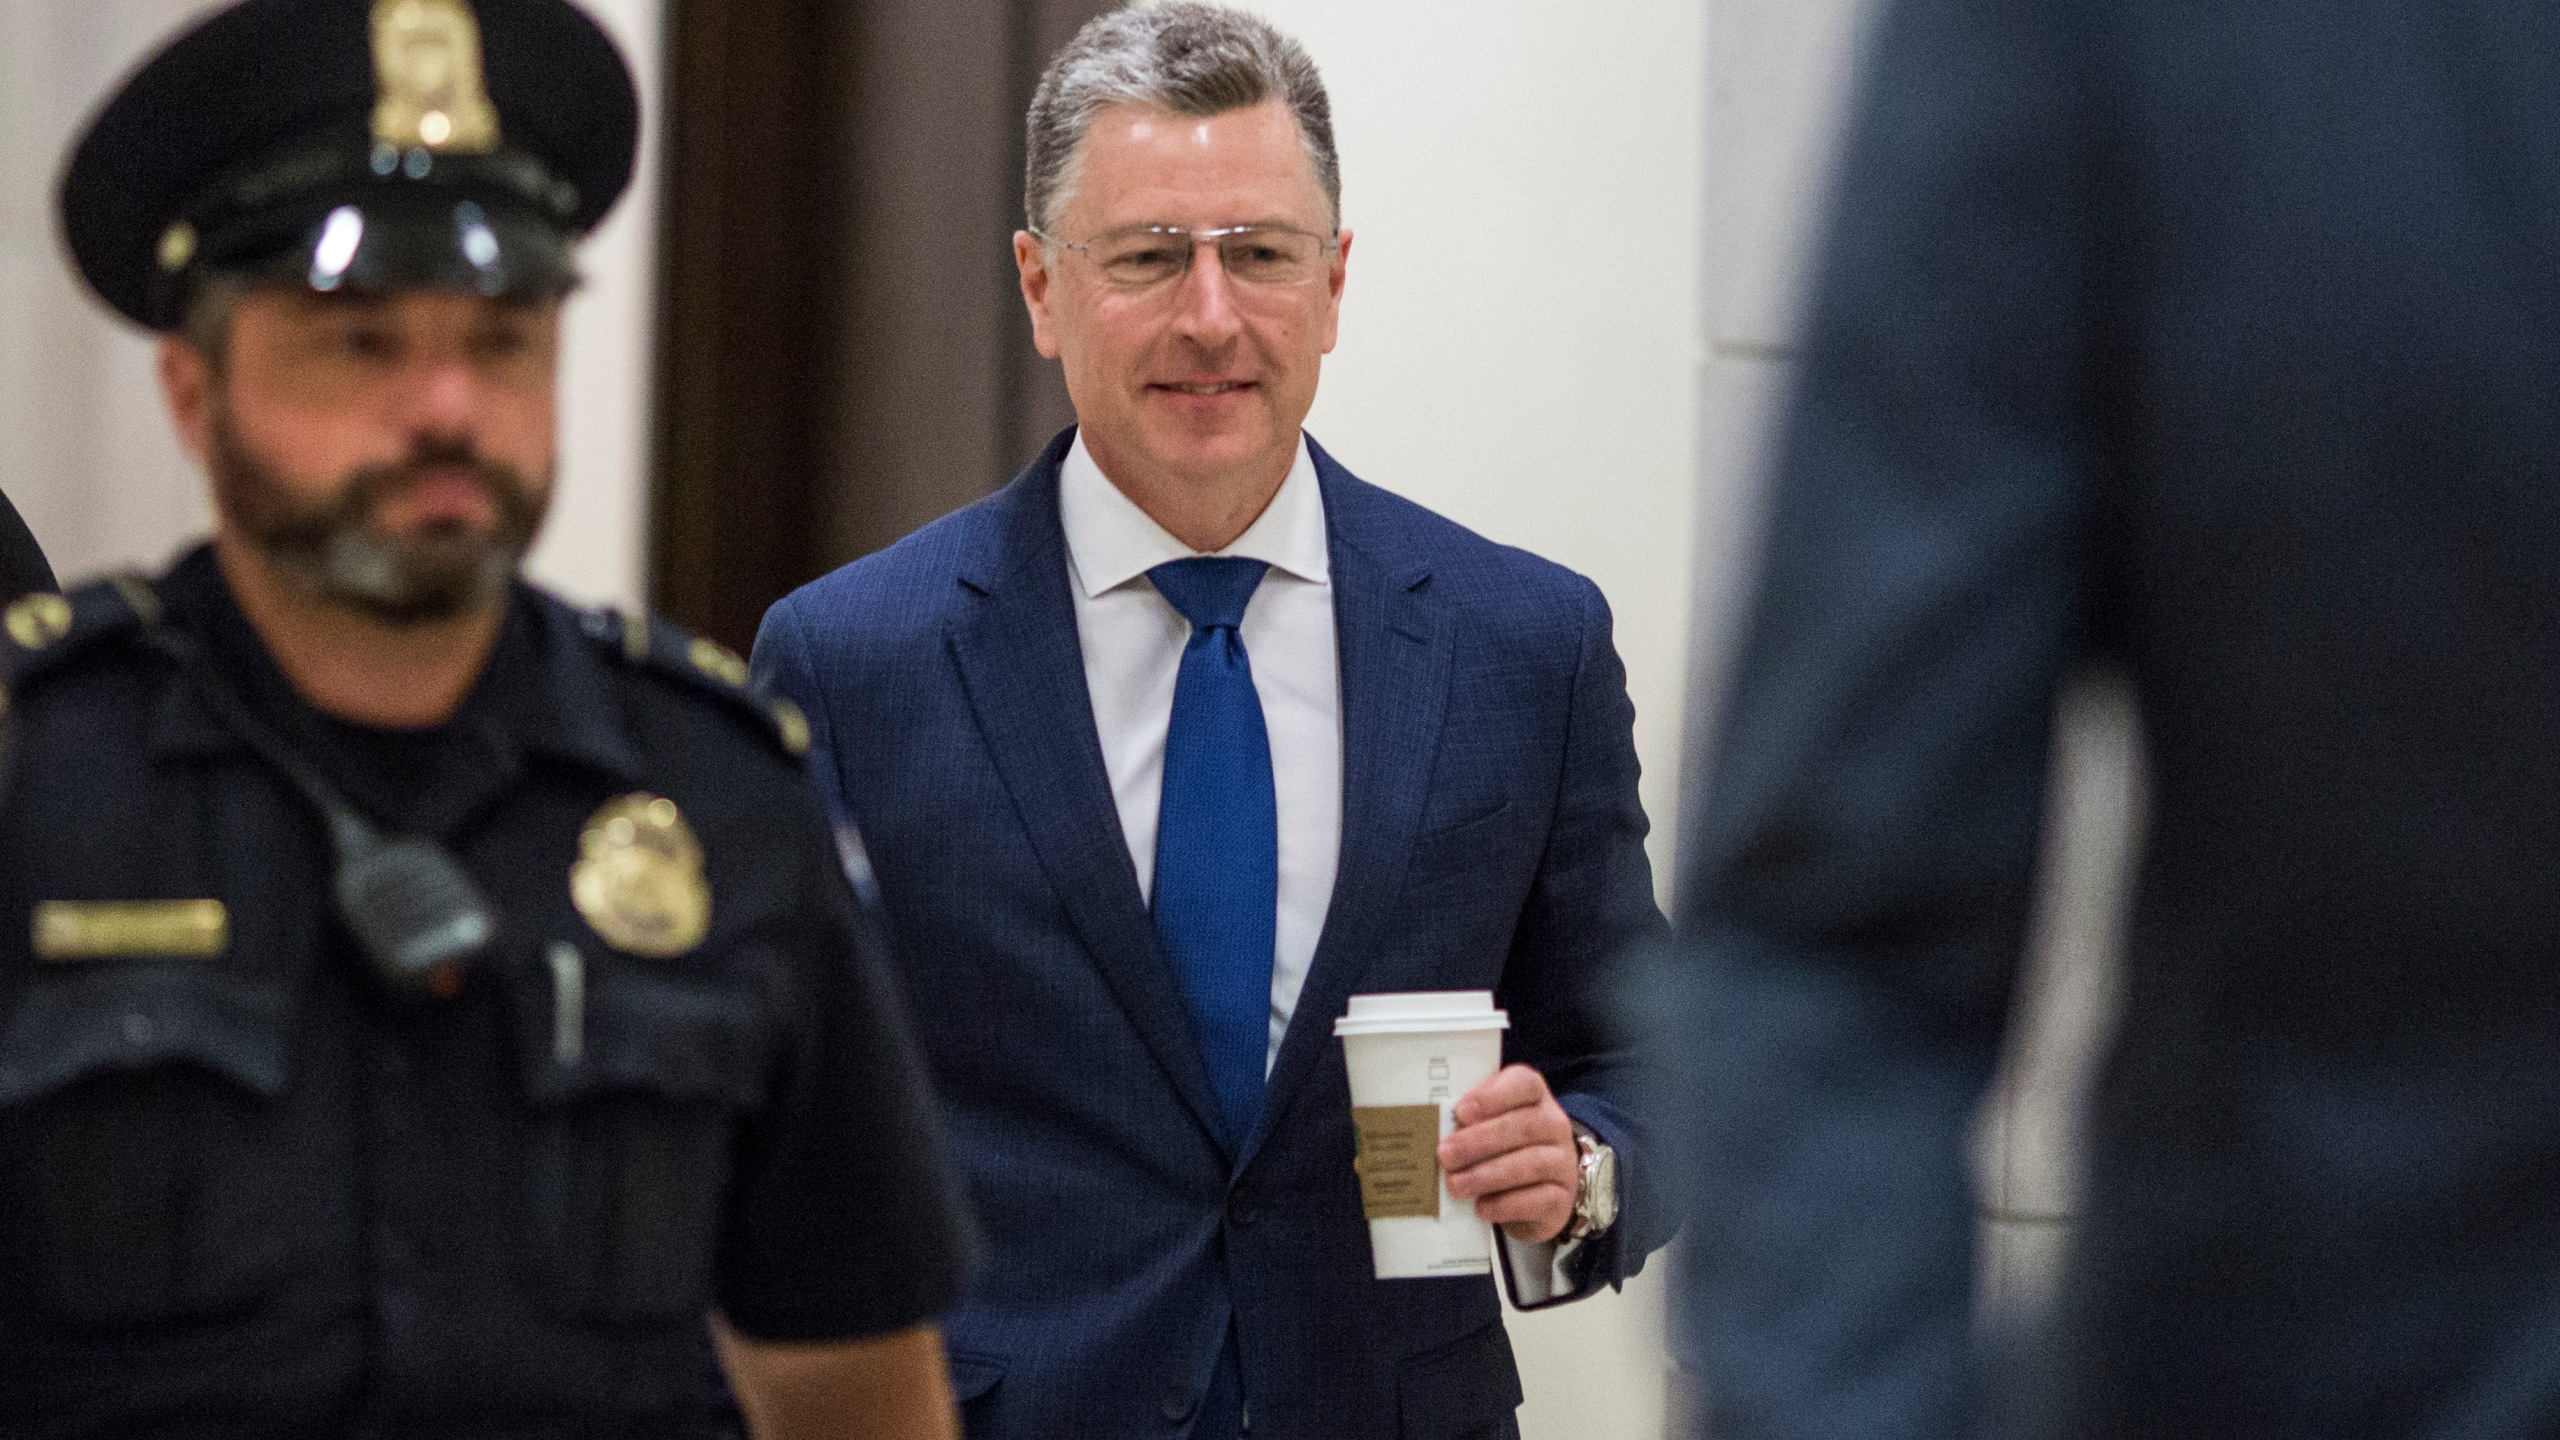 Former Special Envoy to Ukraine Kurt Volker arrives on Capitol Hill before a closed-door deposition led by the House Intelligence Committee on October 3, 2019 in Washington, DC. (Credit: Zach Gibson/Getty Images)